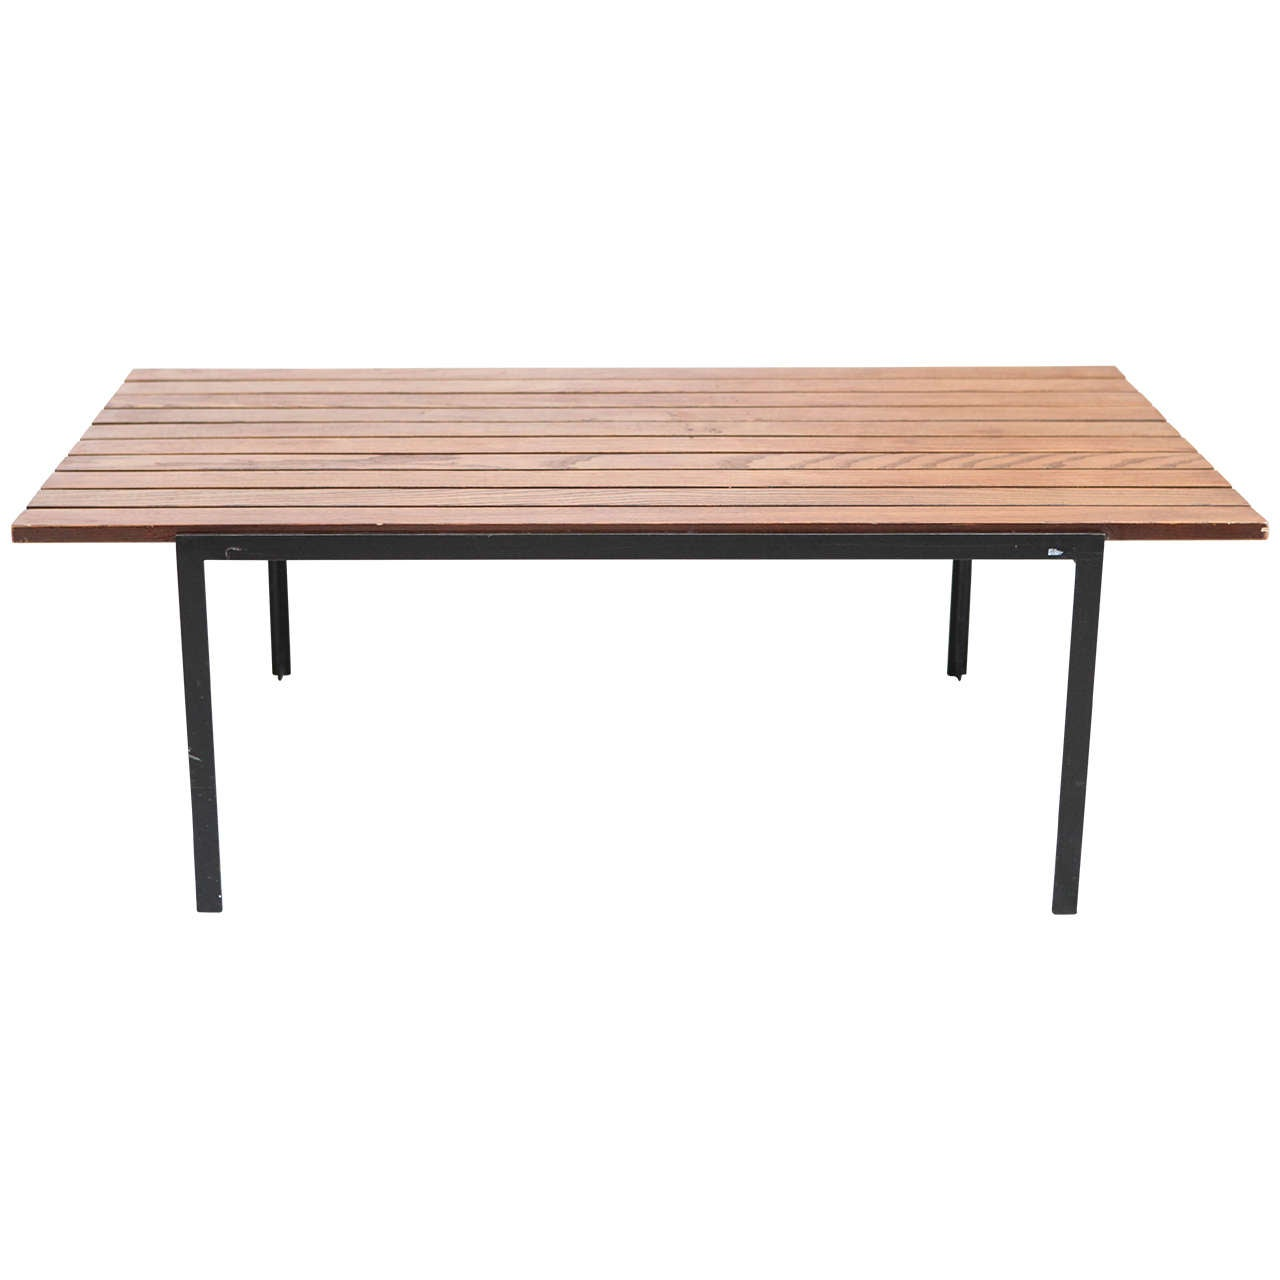 Slatted Coffee Table Slatted Wood Coffee Table By Florence Knoll At 1stdibs